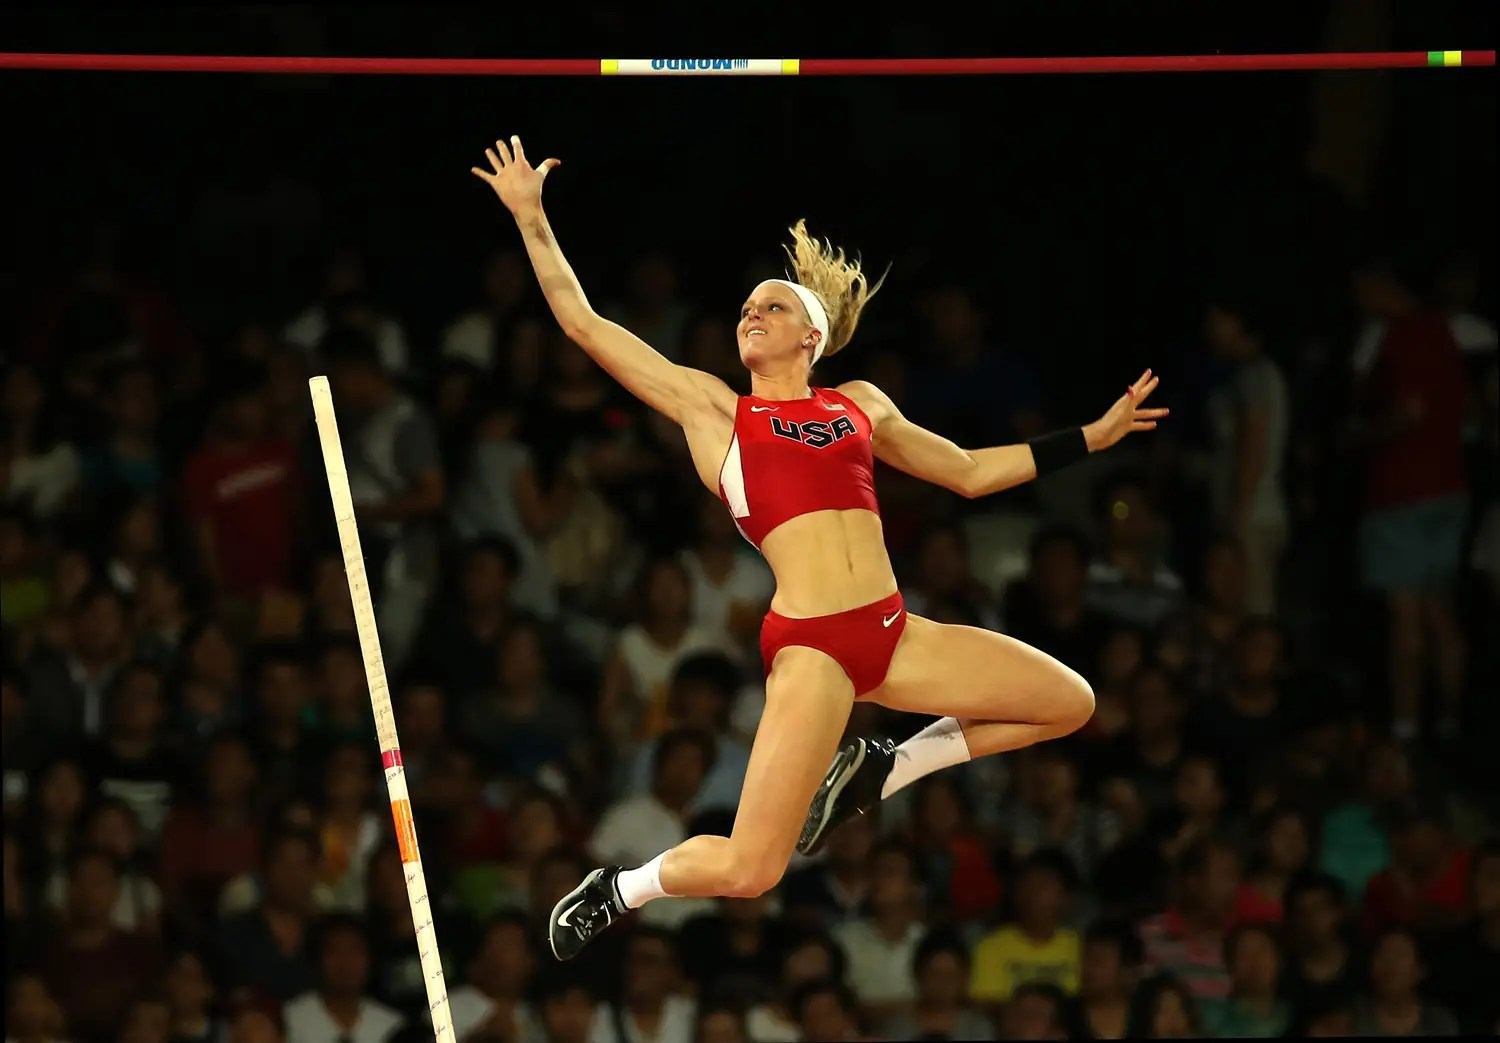 US pole vaulter Sandi Morris clears the bar.